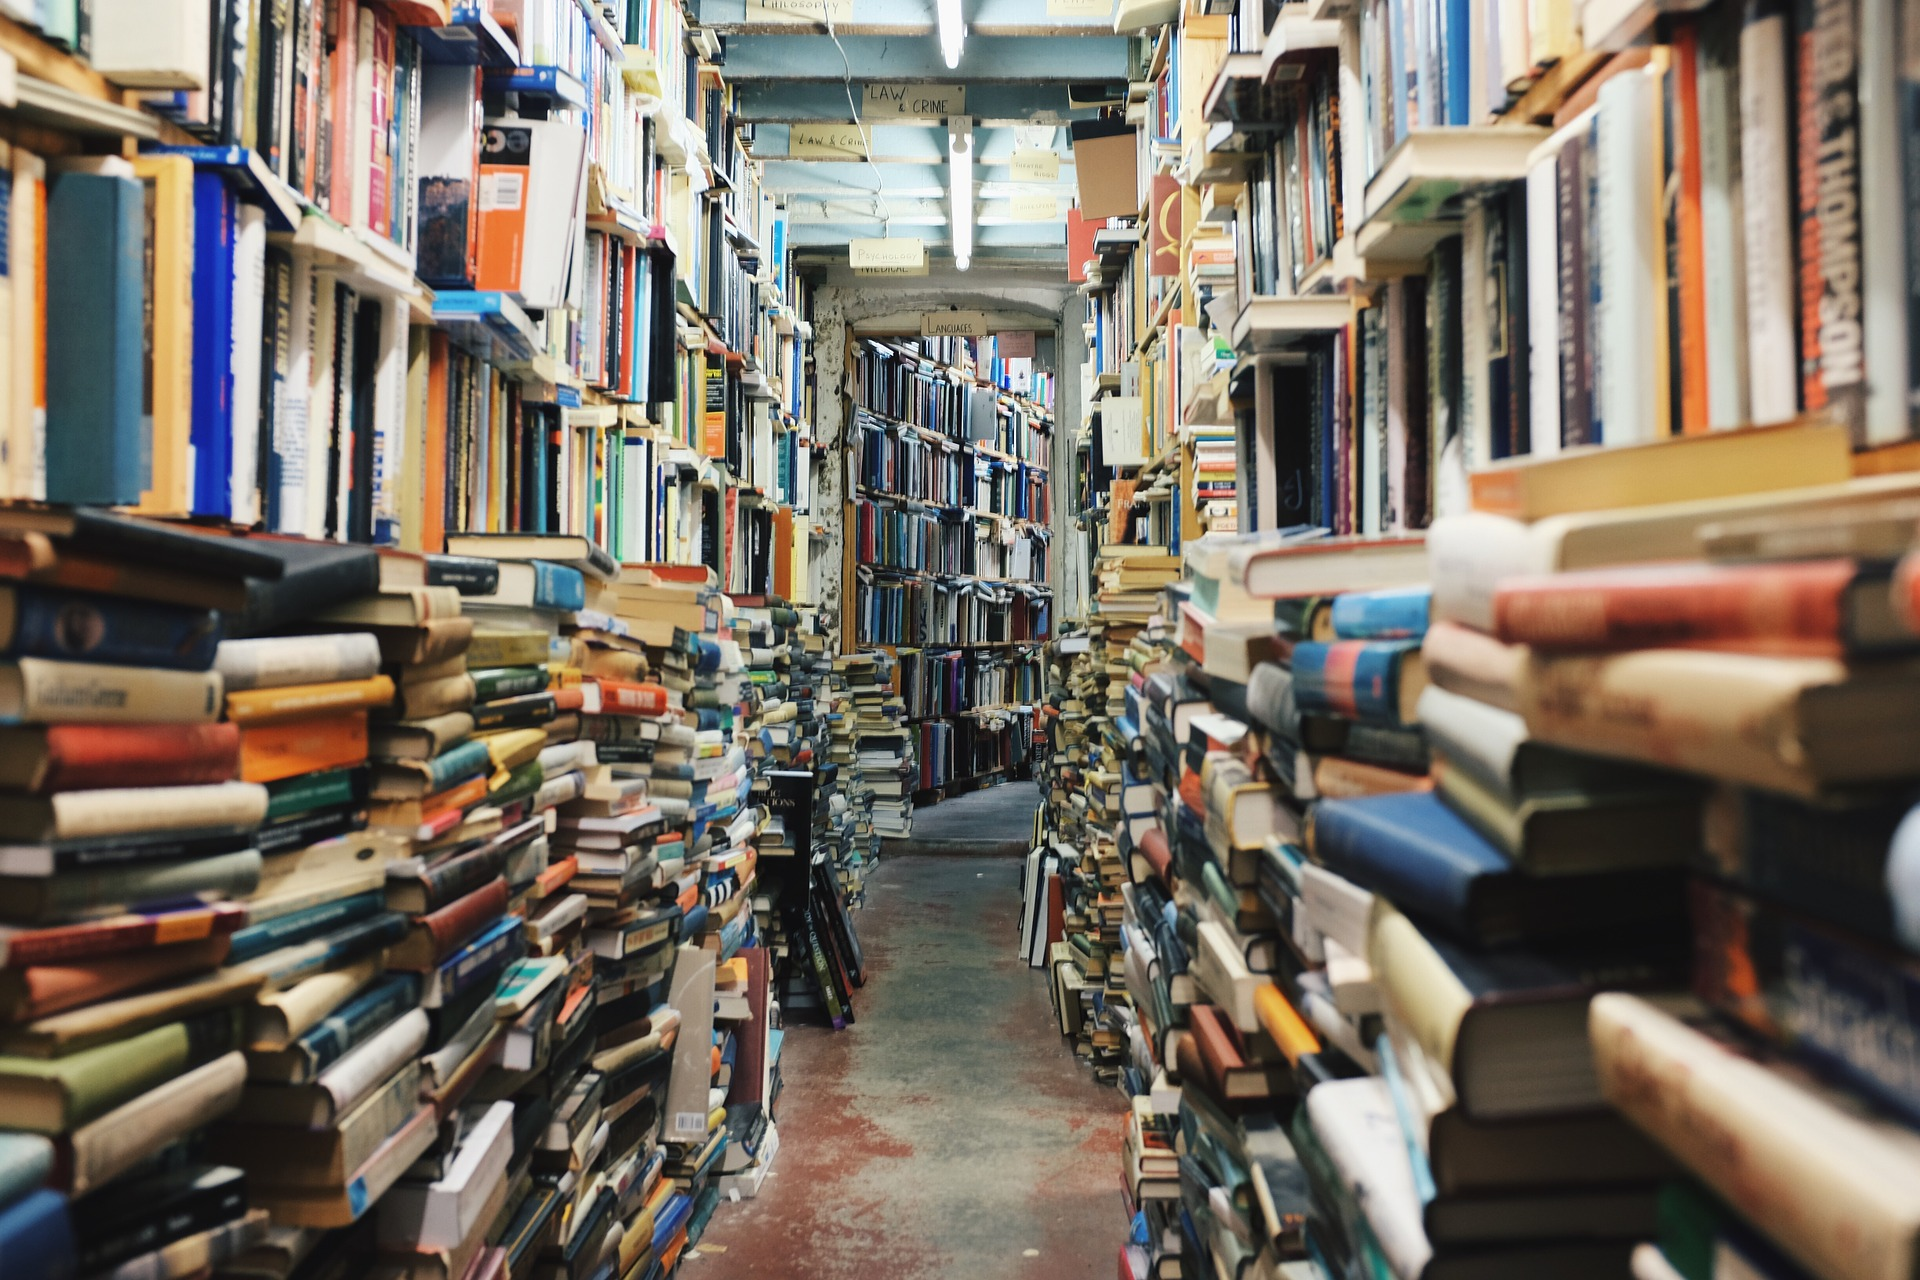 How to publish your own business book